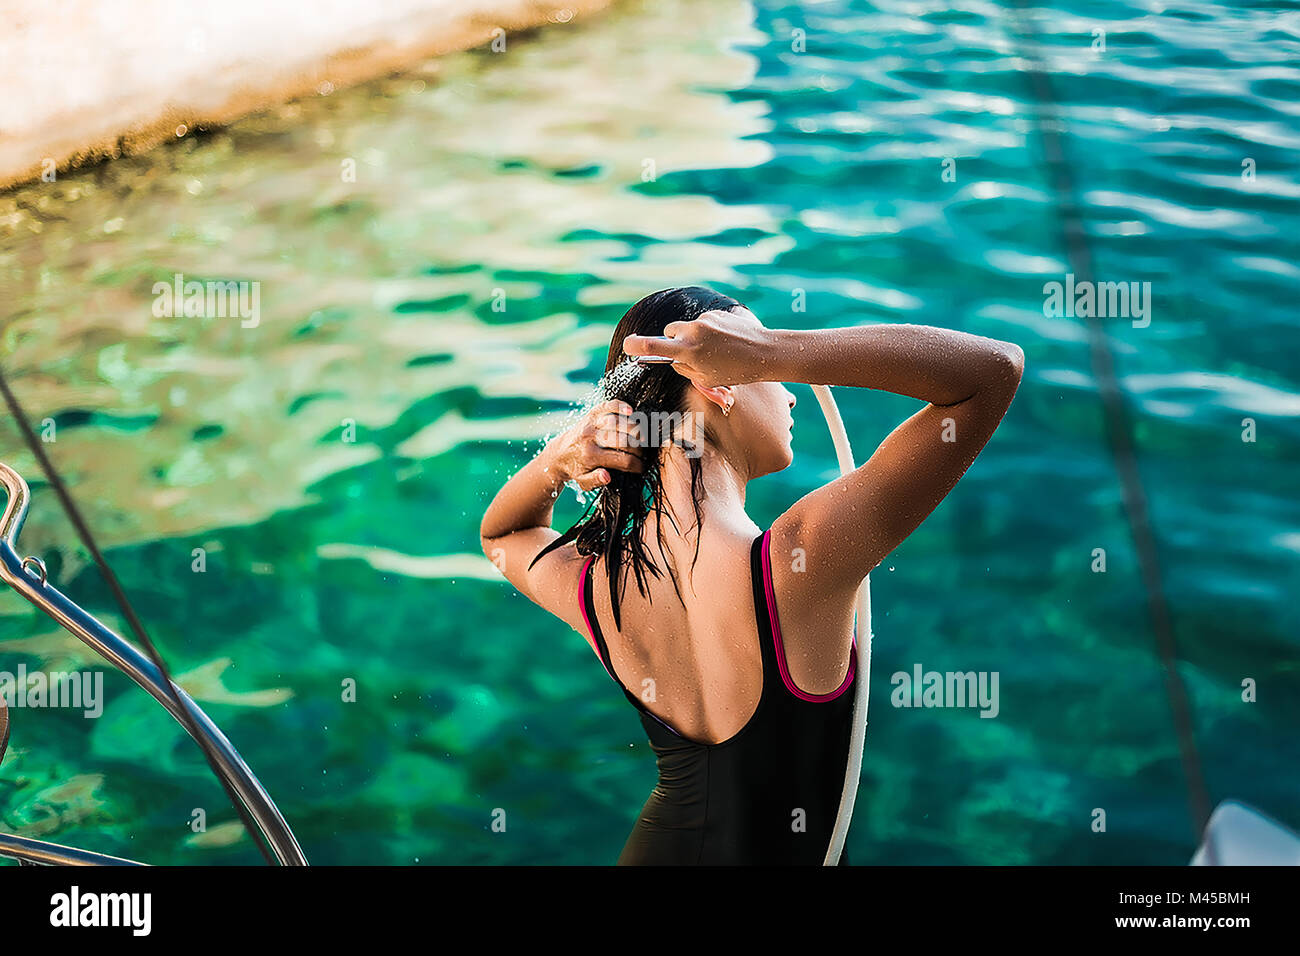 Young woman in bathing costume showering aboard yacht, Croatia - Stock Image